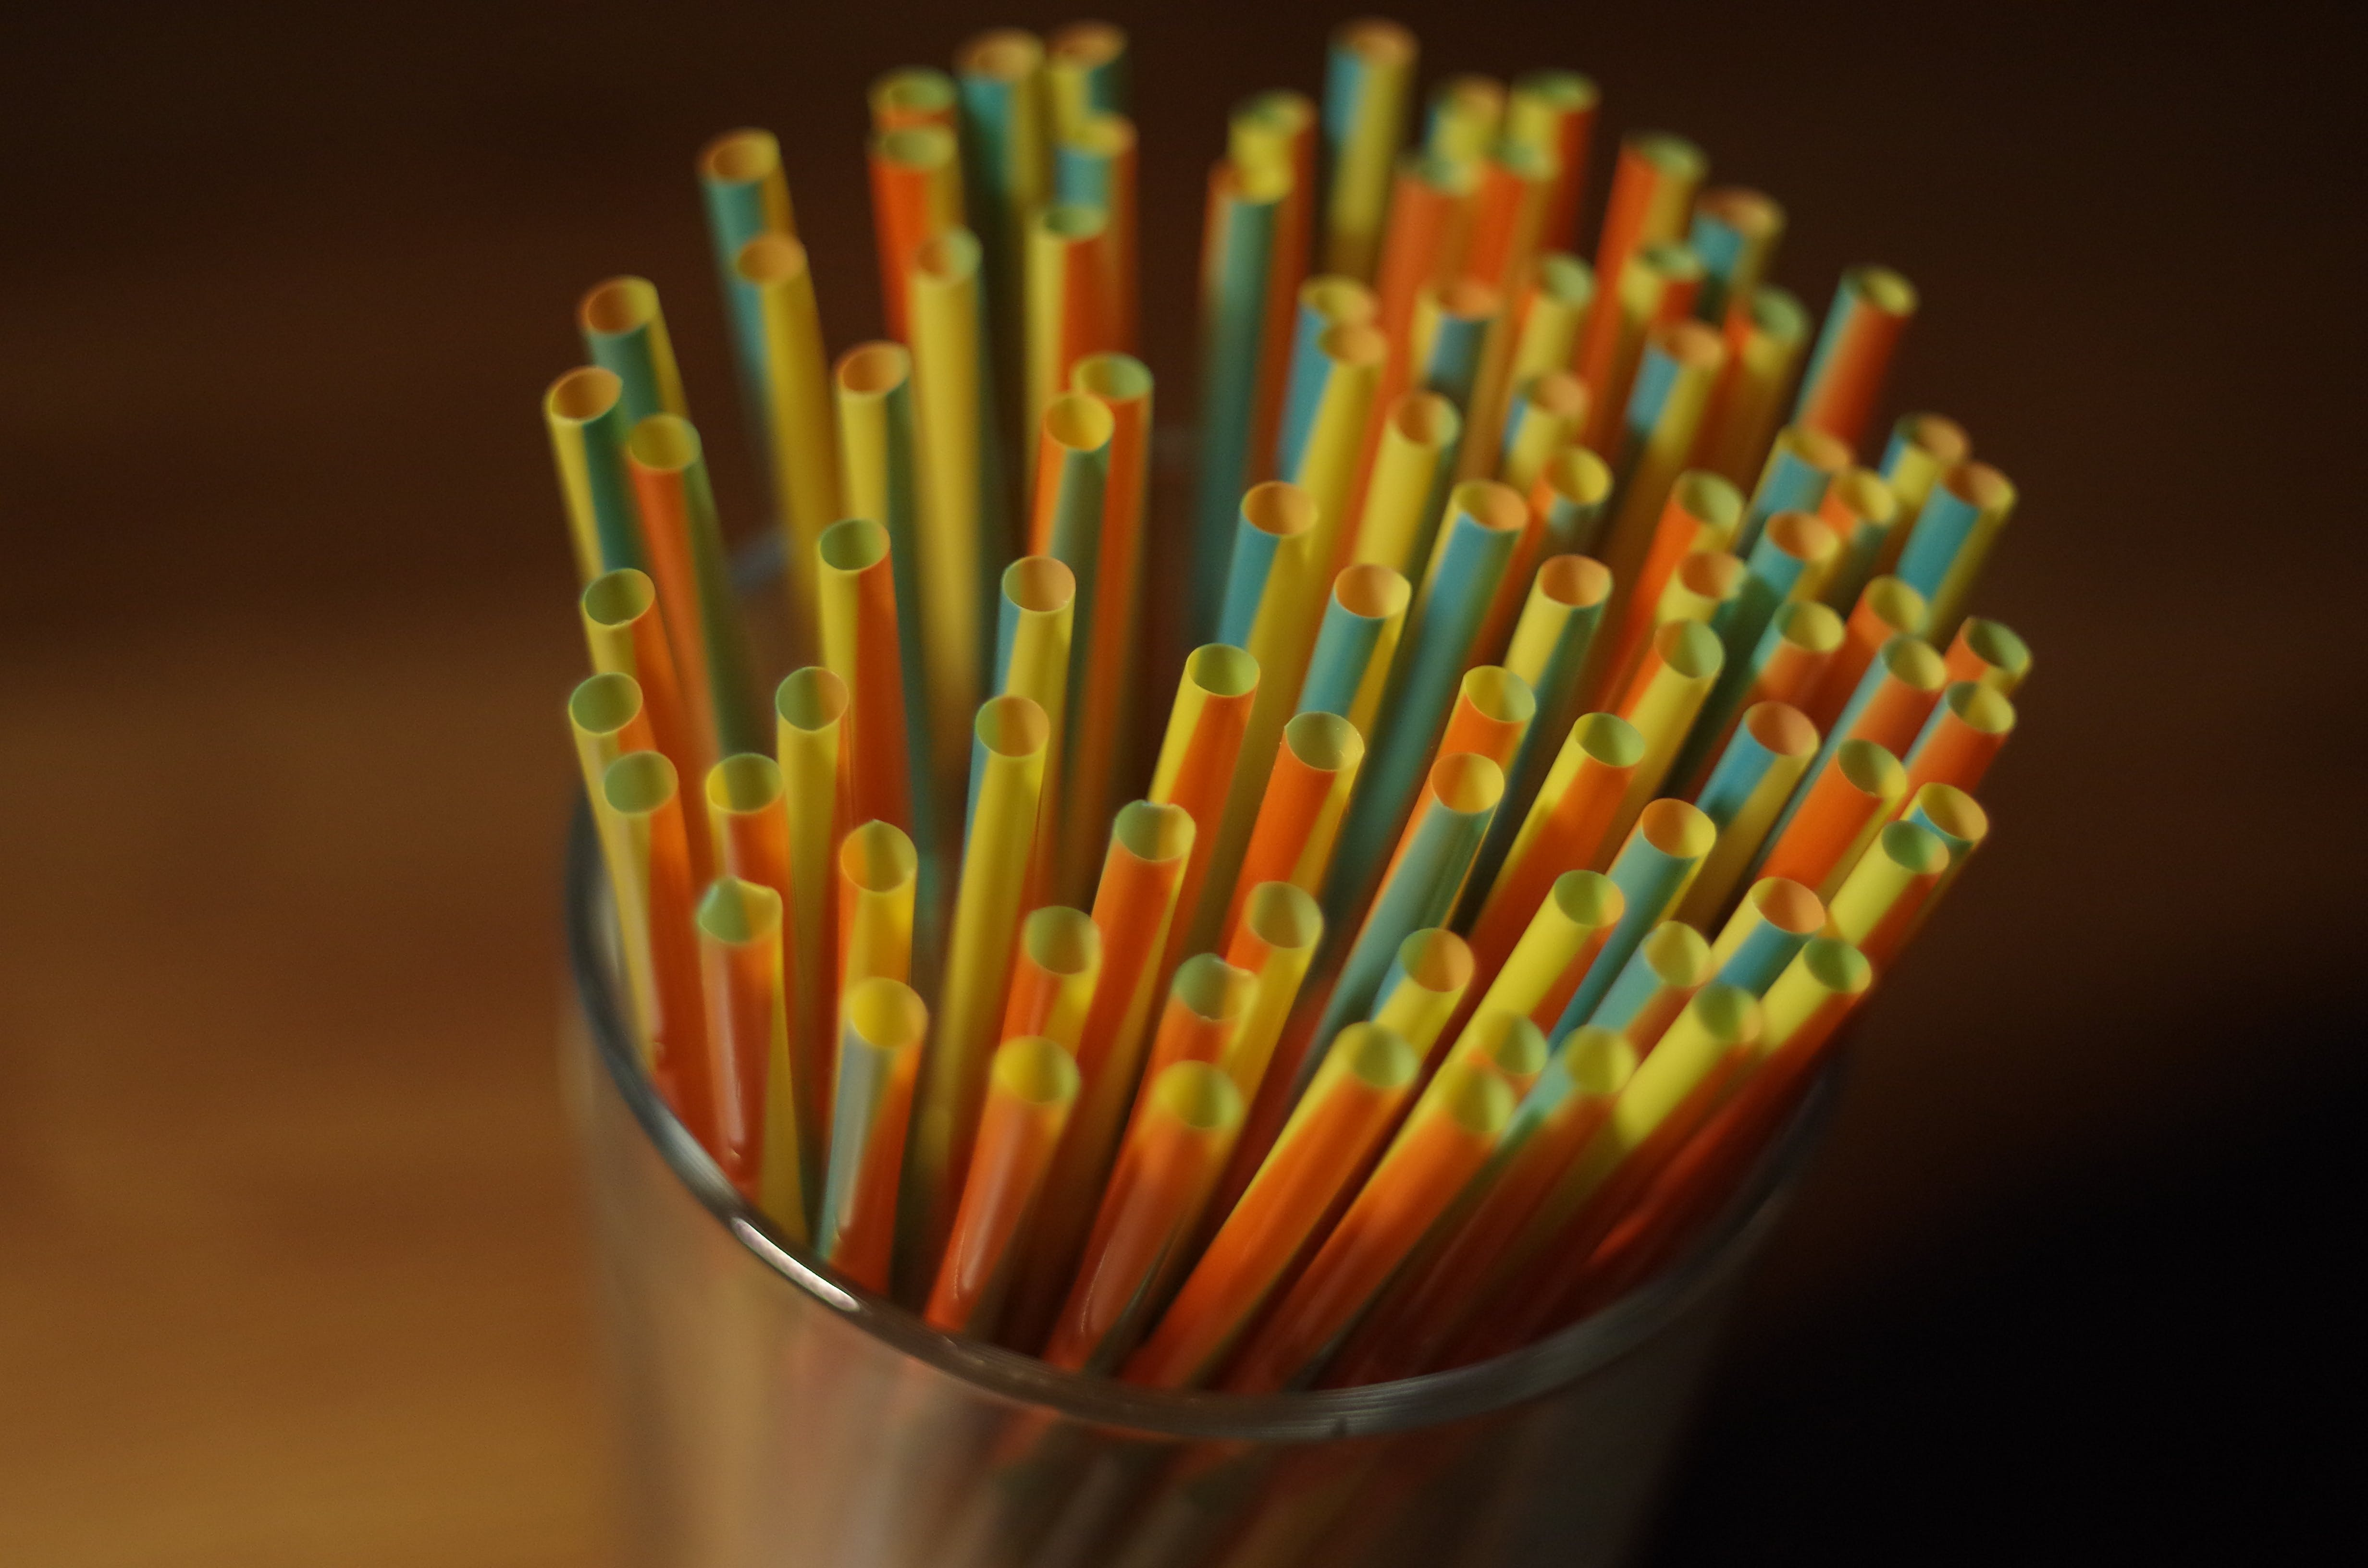 Colorful Plastic Straw on a Glass Container